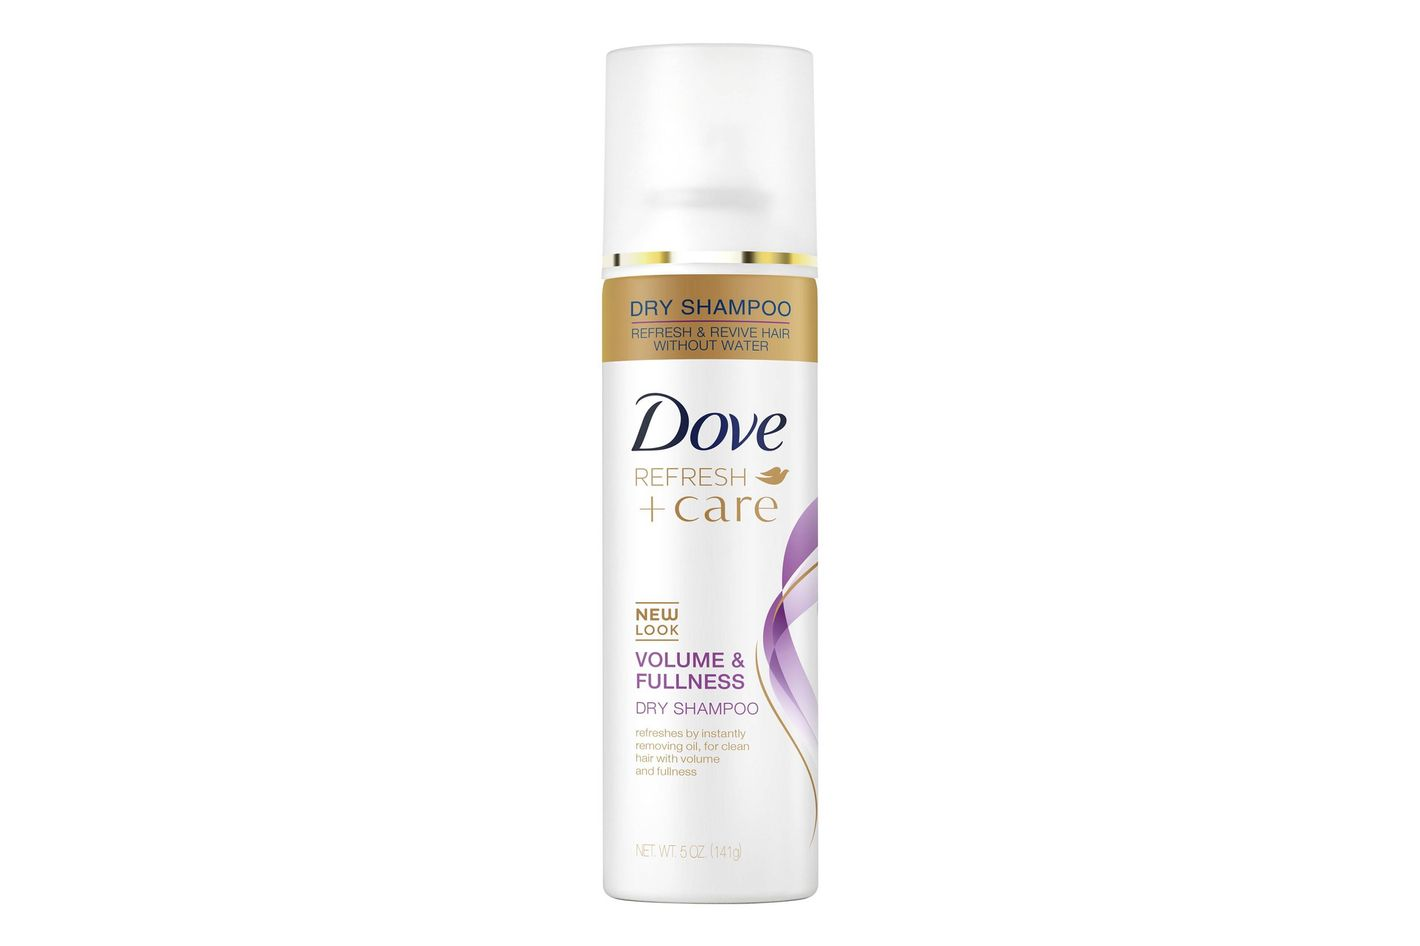 DOVE Refresh + Care Volume & Fullness Dry Shampoo